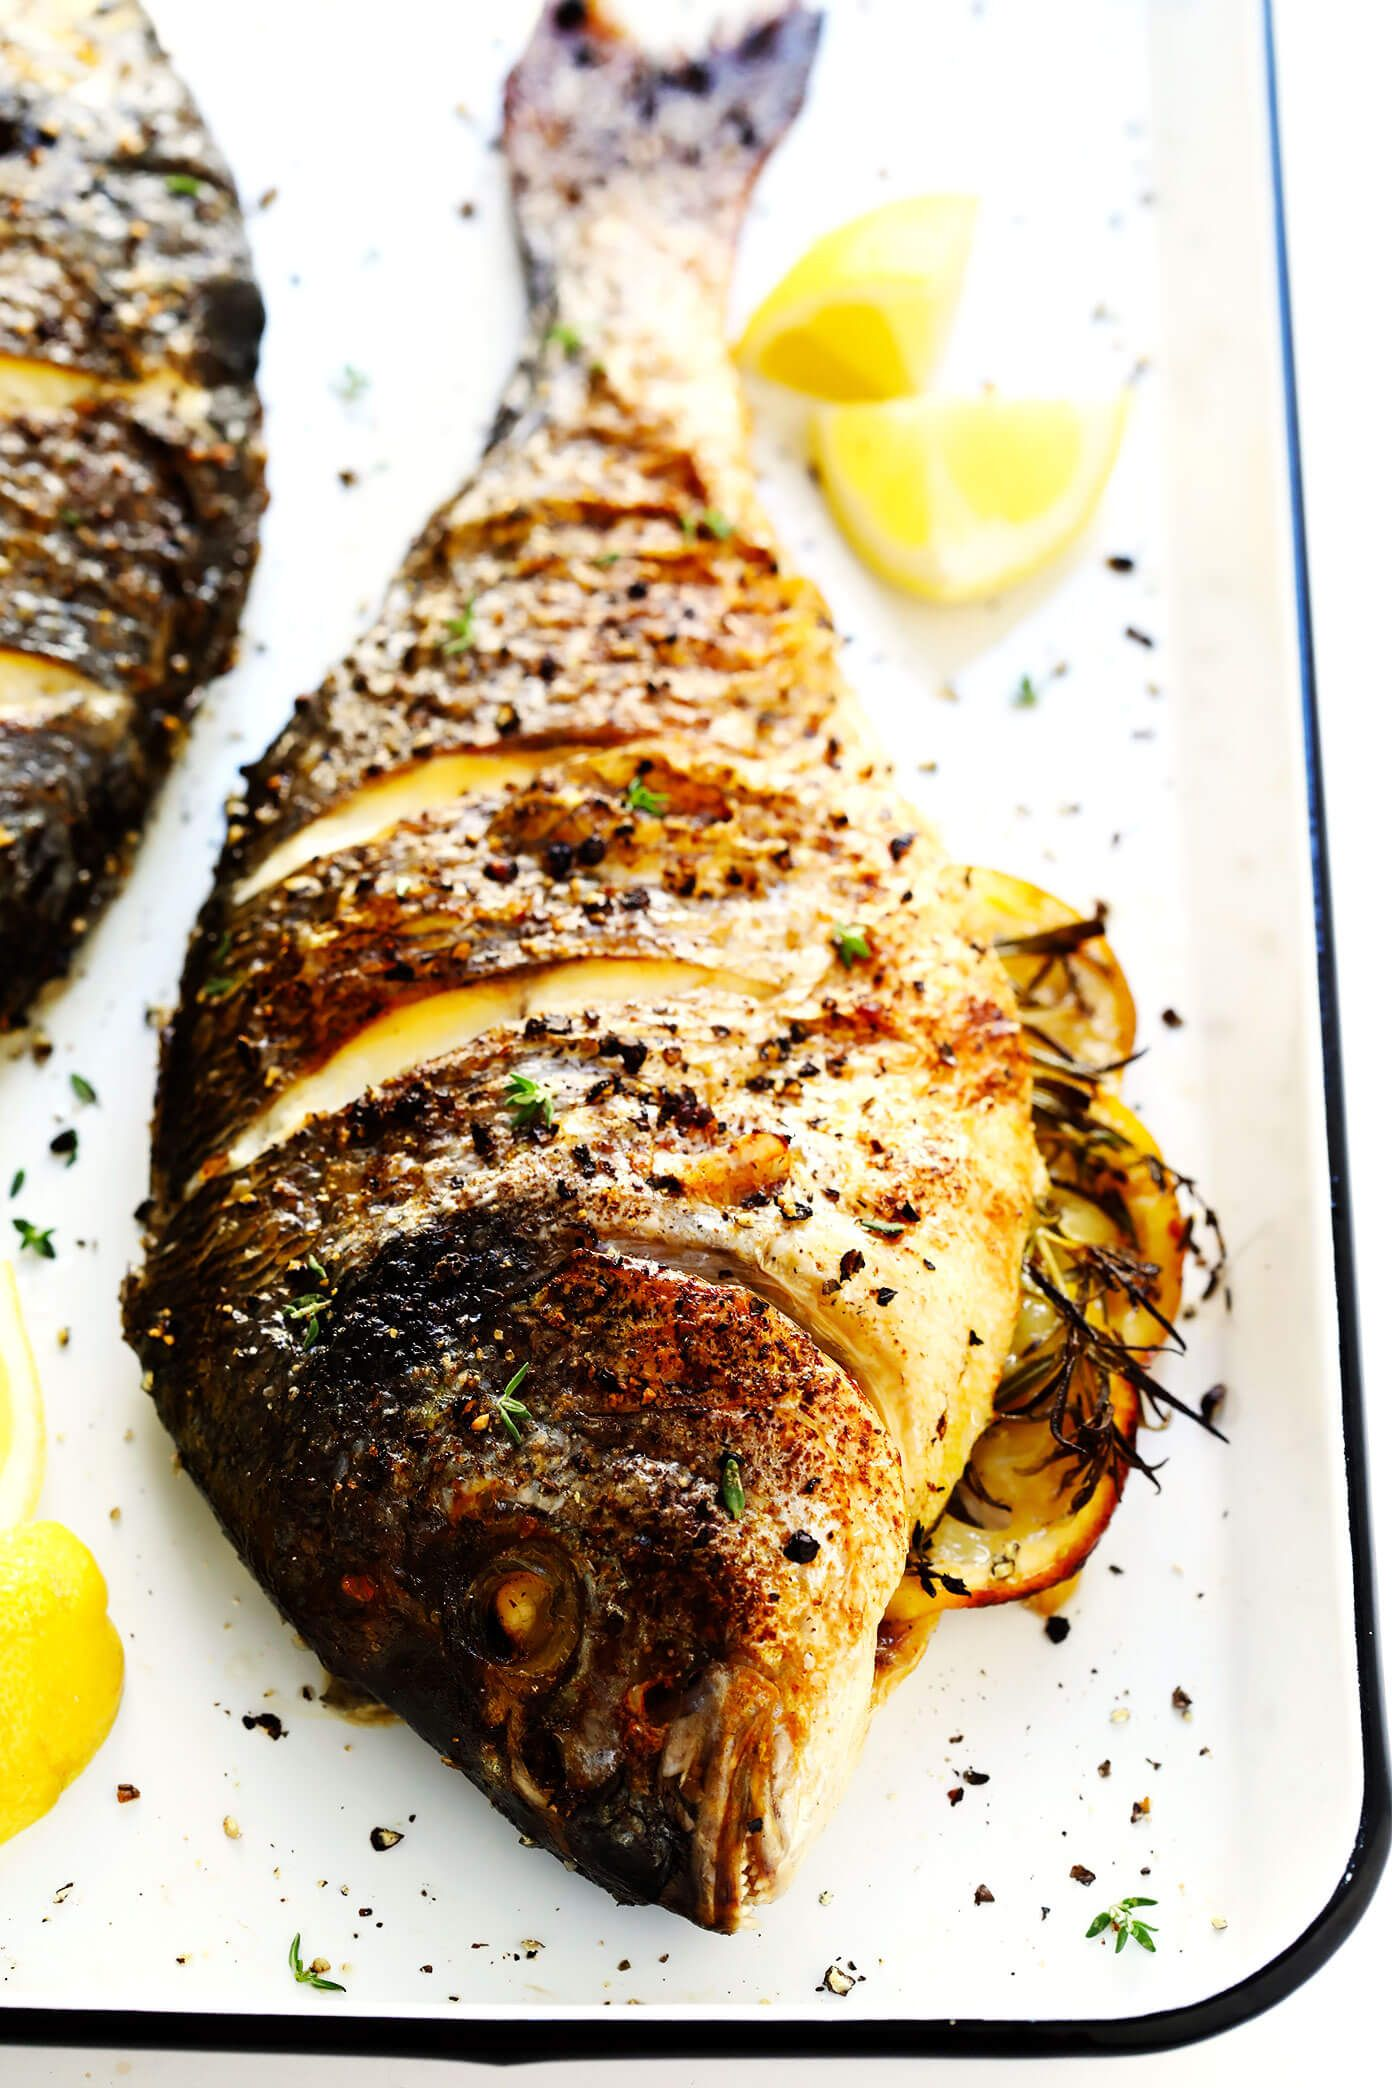 How To Cook A Whole Fish Grilled Fish Recipes Baked Whole Fish Whole Fish Recipes